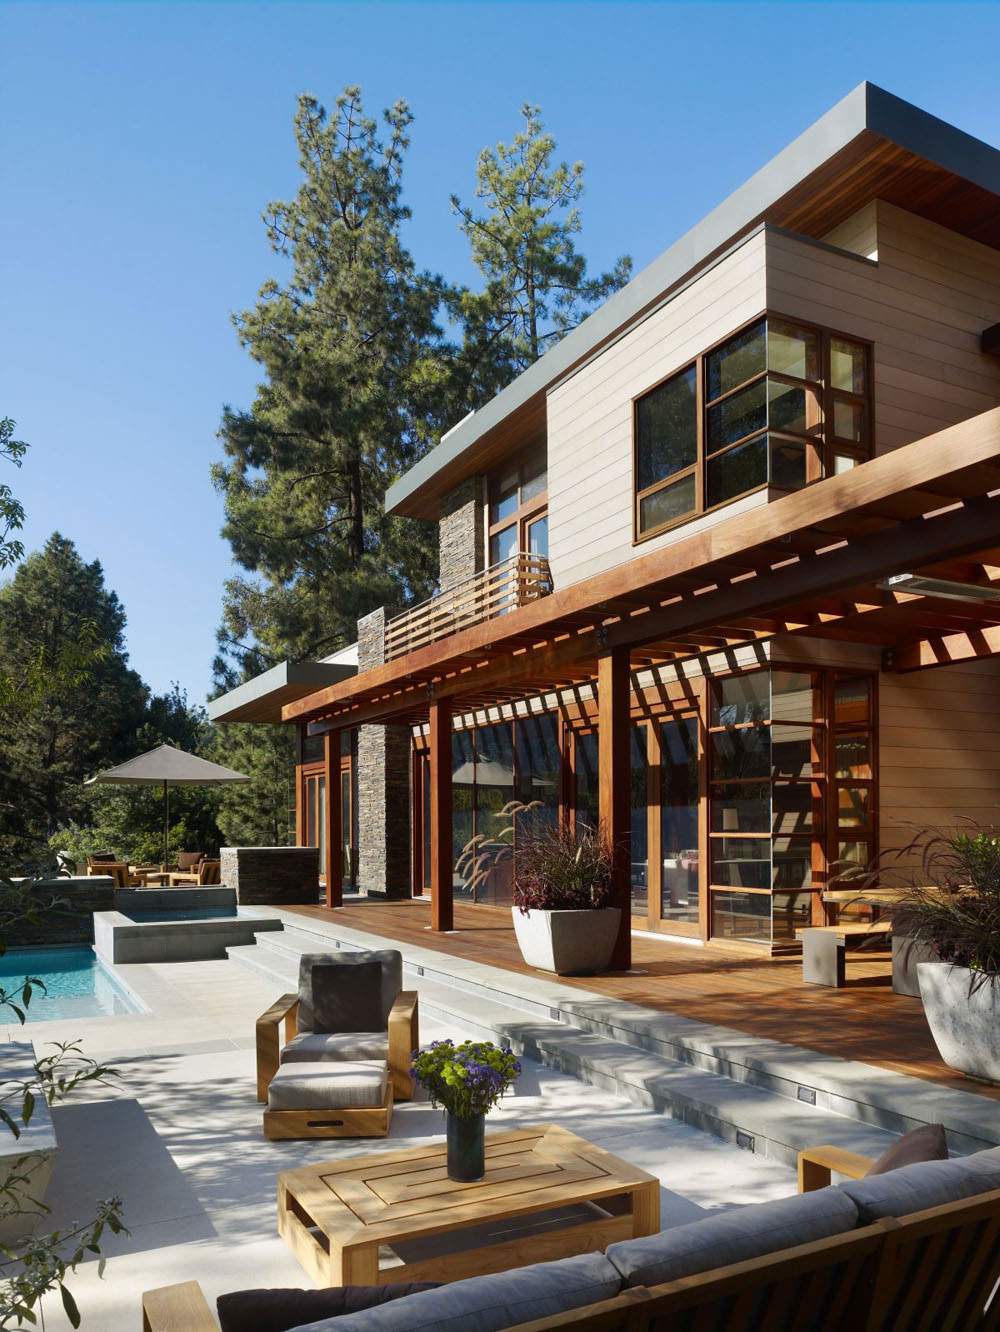 Luxurious home surrounded by trees that complement its elegant furniture 3 Luxurious home surrounded by trees that complement its elegant furniture